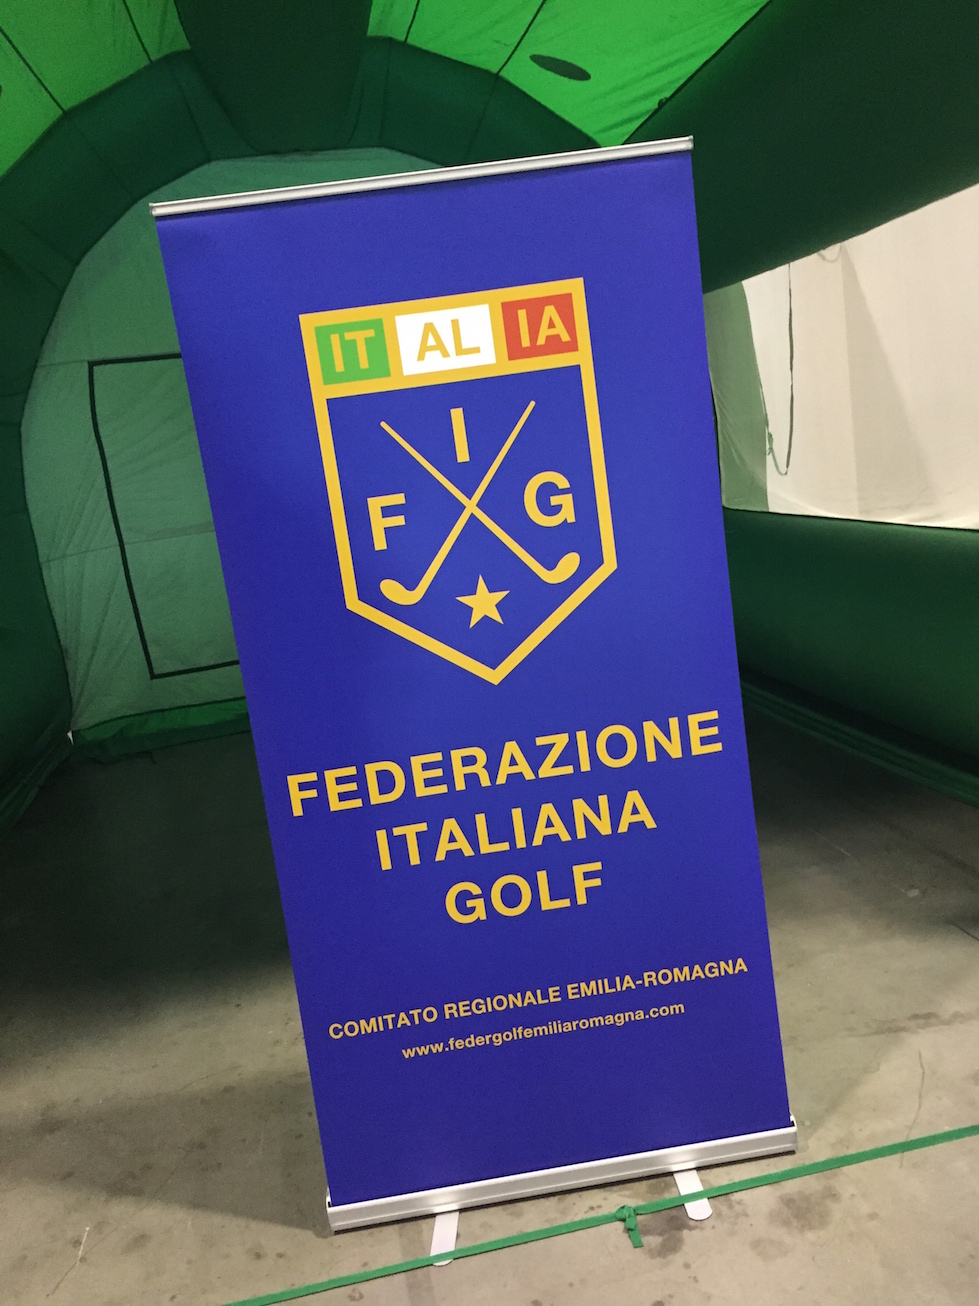 Fiera del Golf Parma 2015 le foto ed i video di Italian Golf Show e le prove dei materiali04 - Fiera del Golf Parma: le foto ed i video di Italian Golf Show